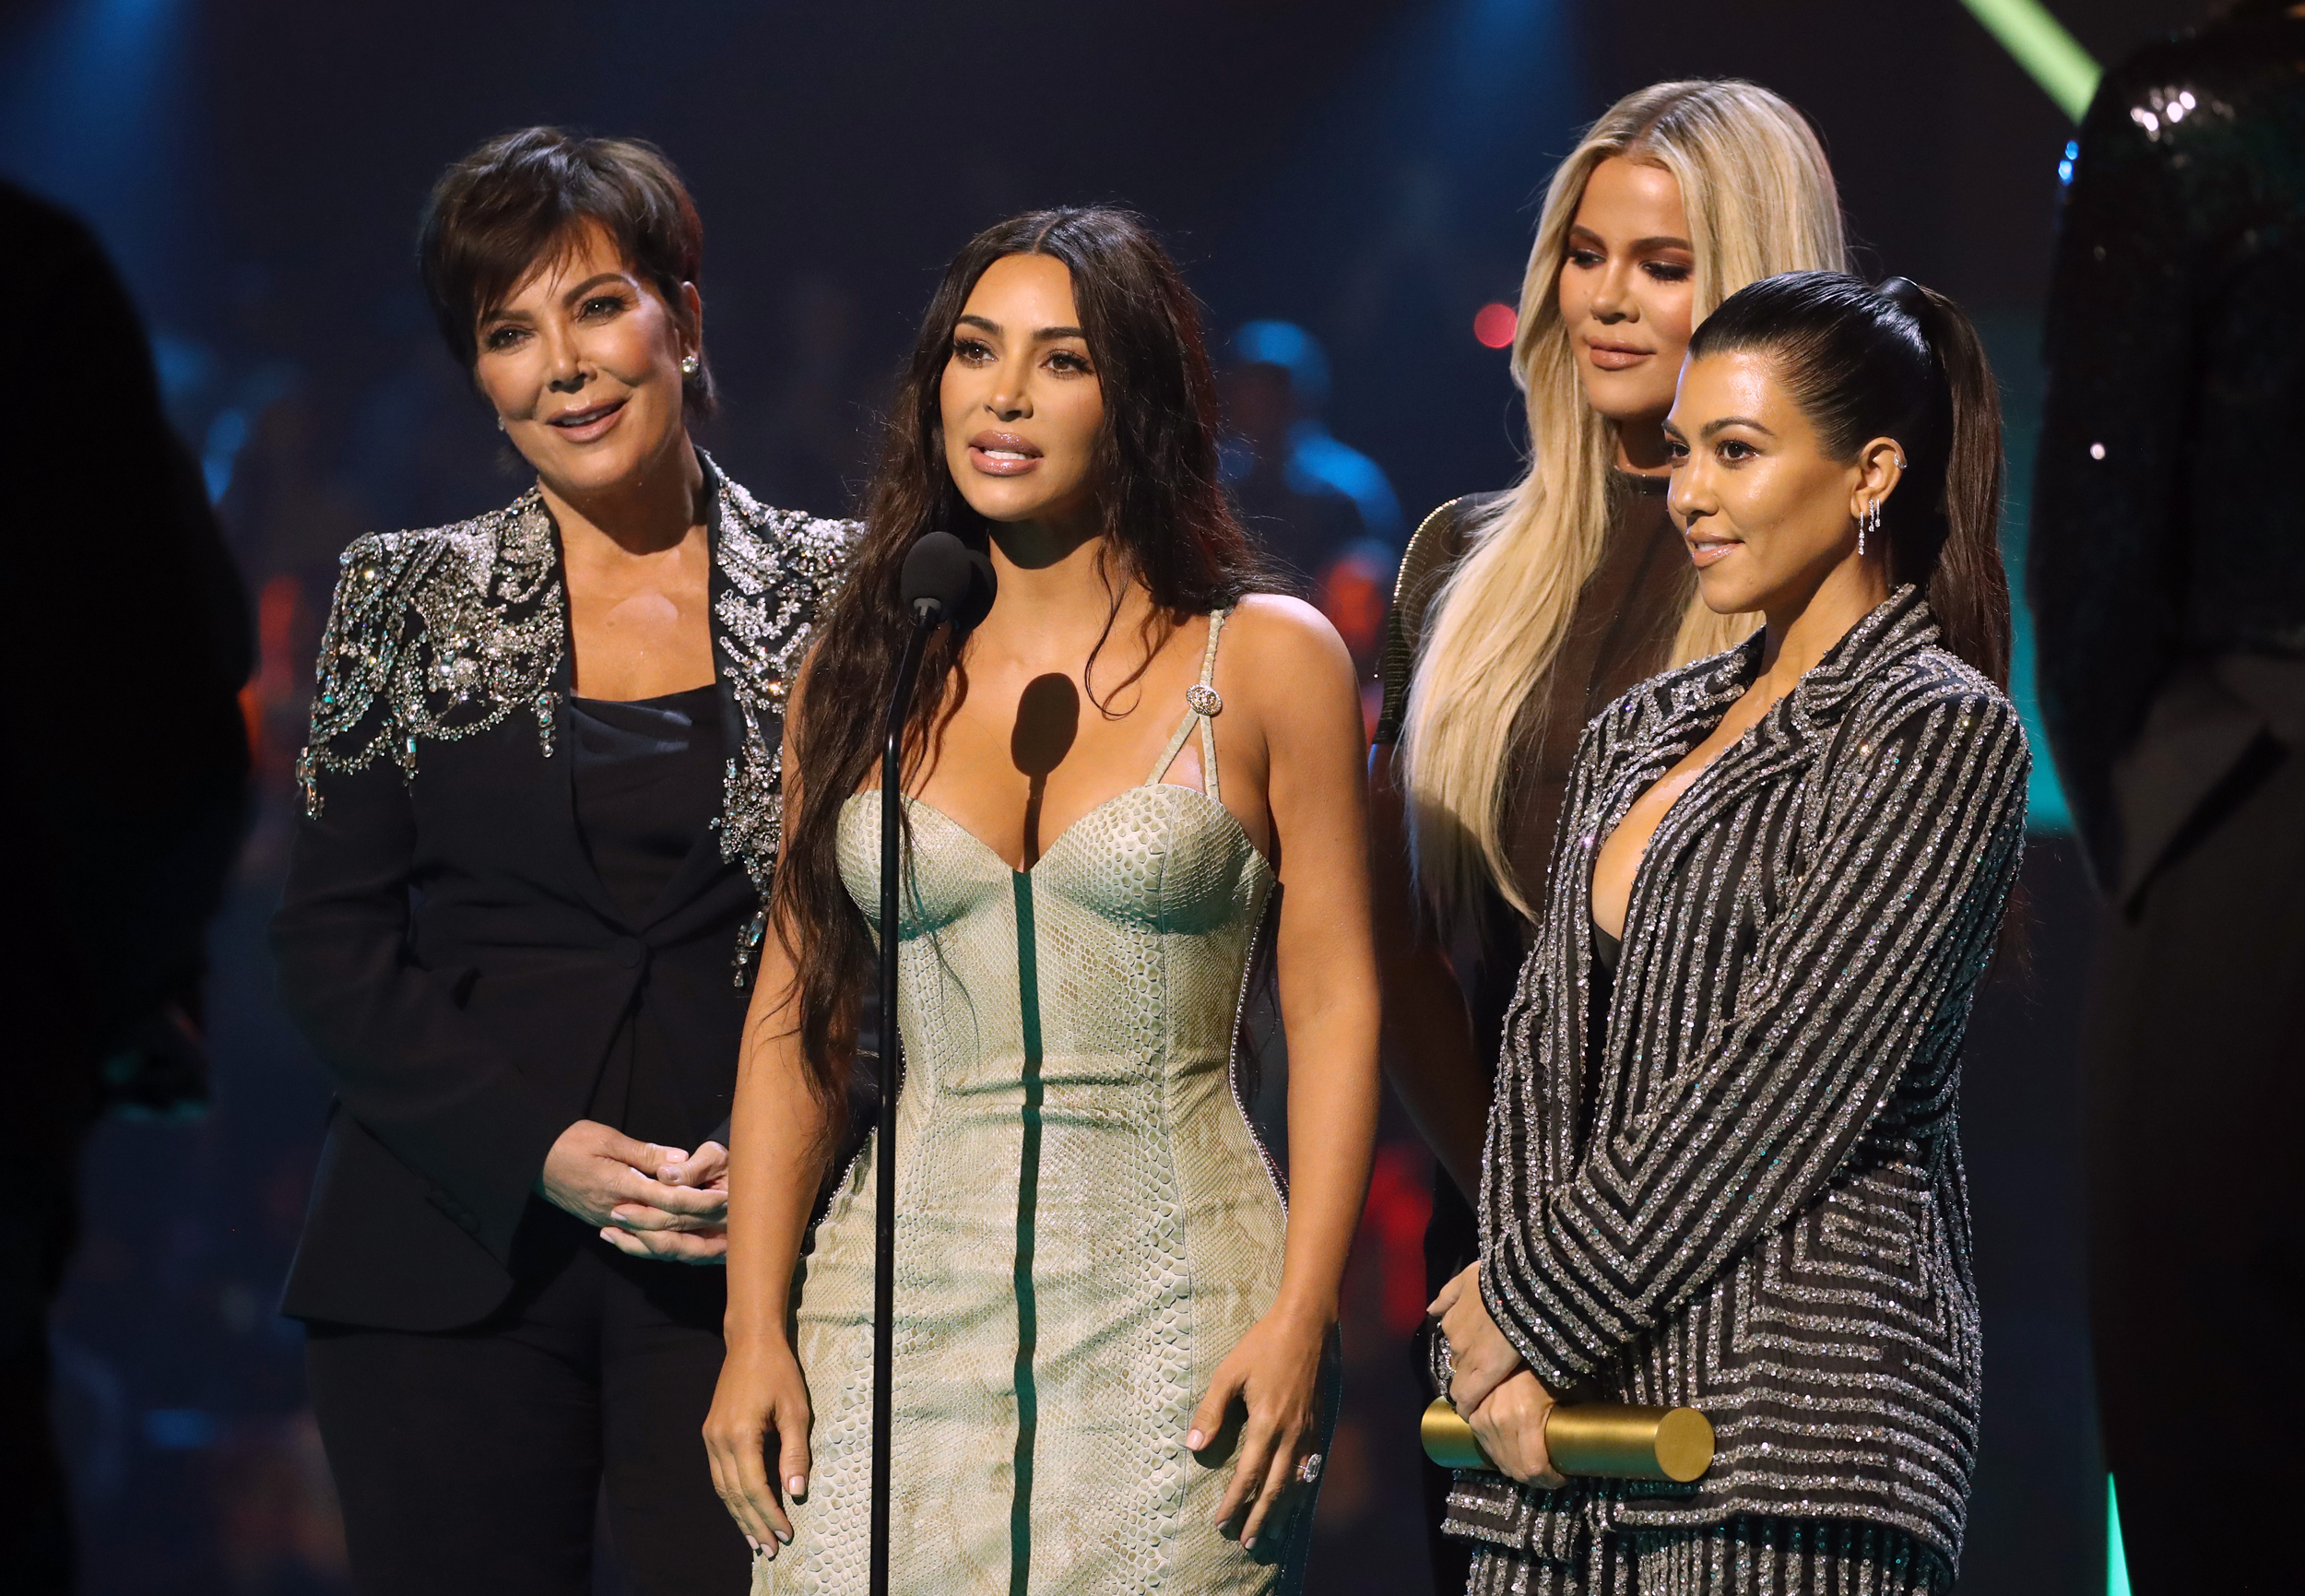 Keeping Up With The Kardashians Will End In 2021 After More Than A Decade On Air